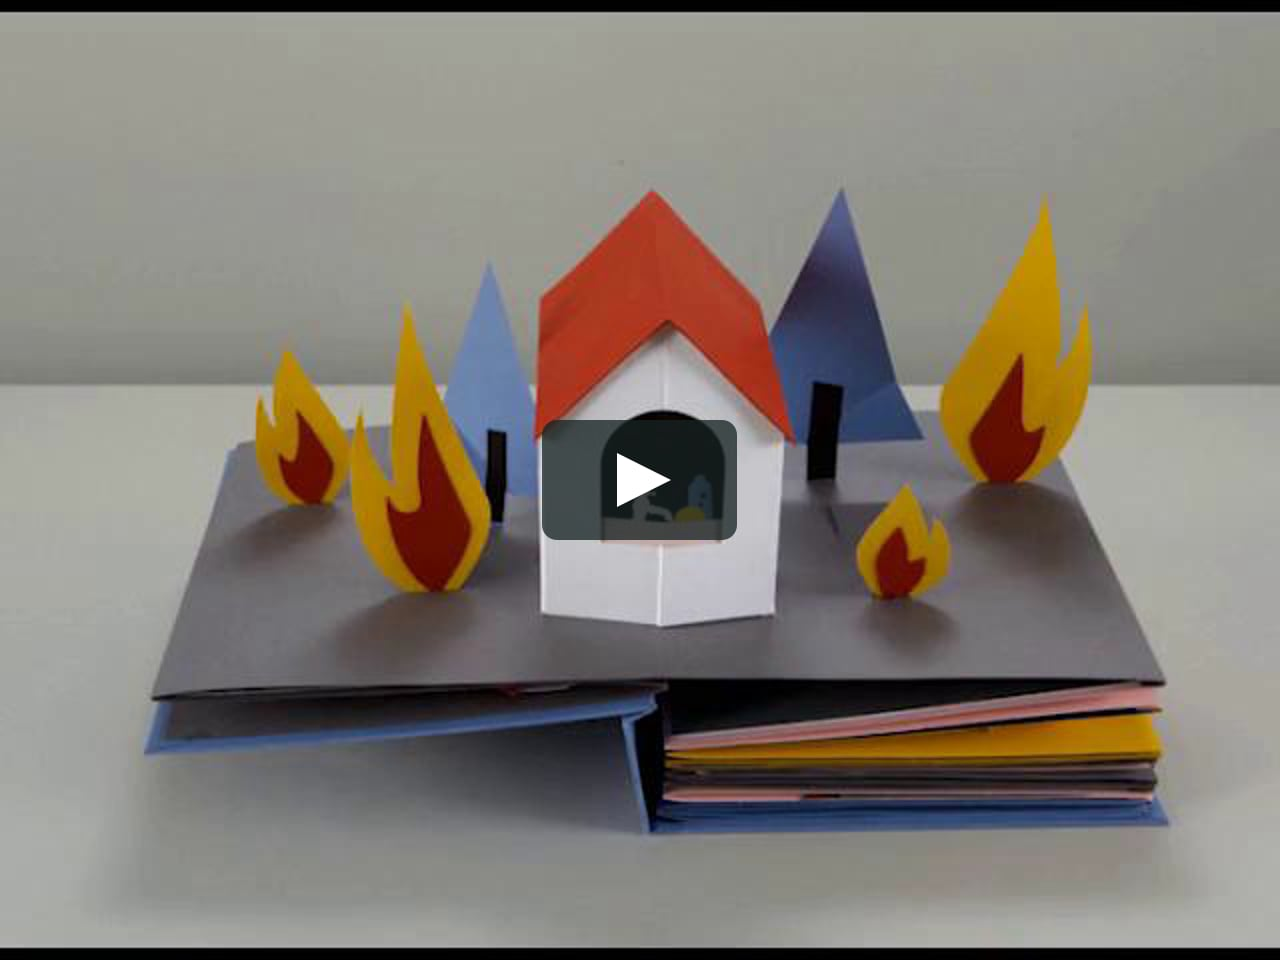 Papercraft Revolution - photography by Chris Turner